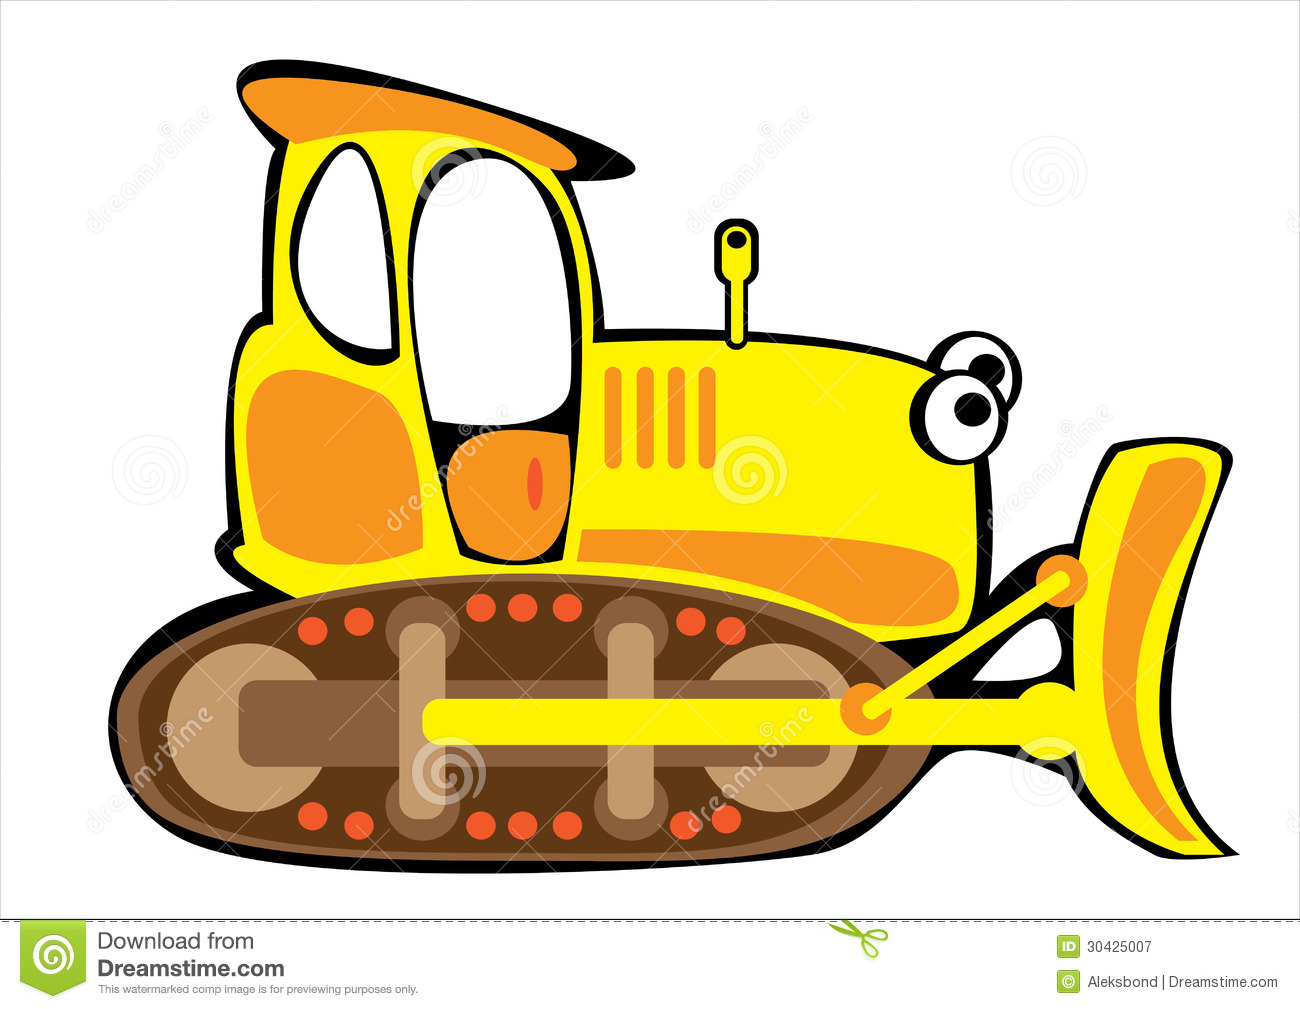 cartoon yellow bulldozer isolated white background 30425007 furthermore construction crane coloring page on construction equipment coloring pages as well as construction equipment coloring pages 2 on construction equipment coloring pages also with construction equipment coloring pages 3 on construction equipment coloring pages furthermore construction equipment coloring pages 4 on construction equipment coloring pages